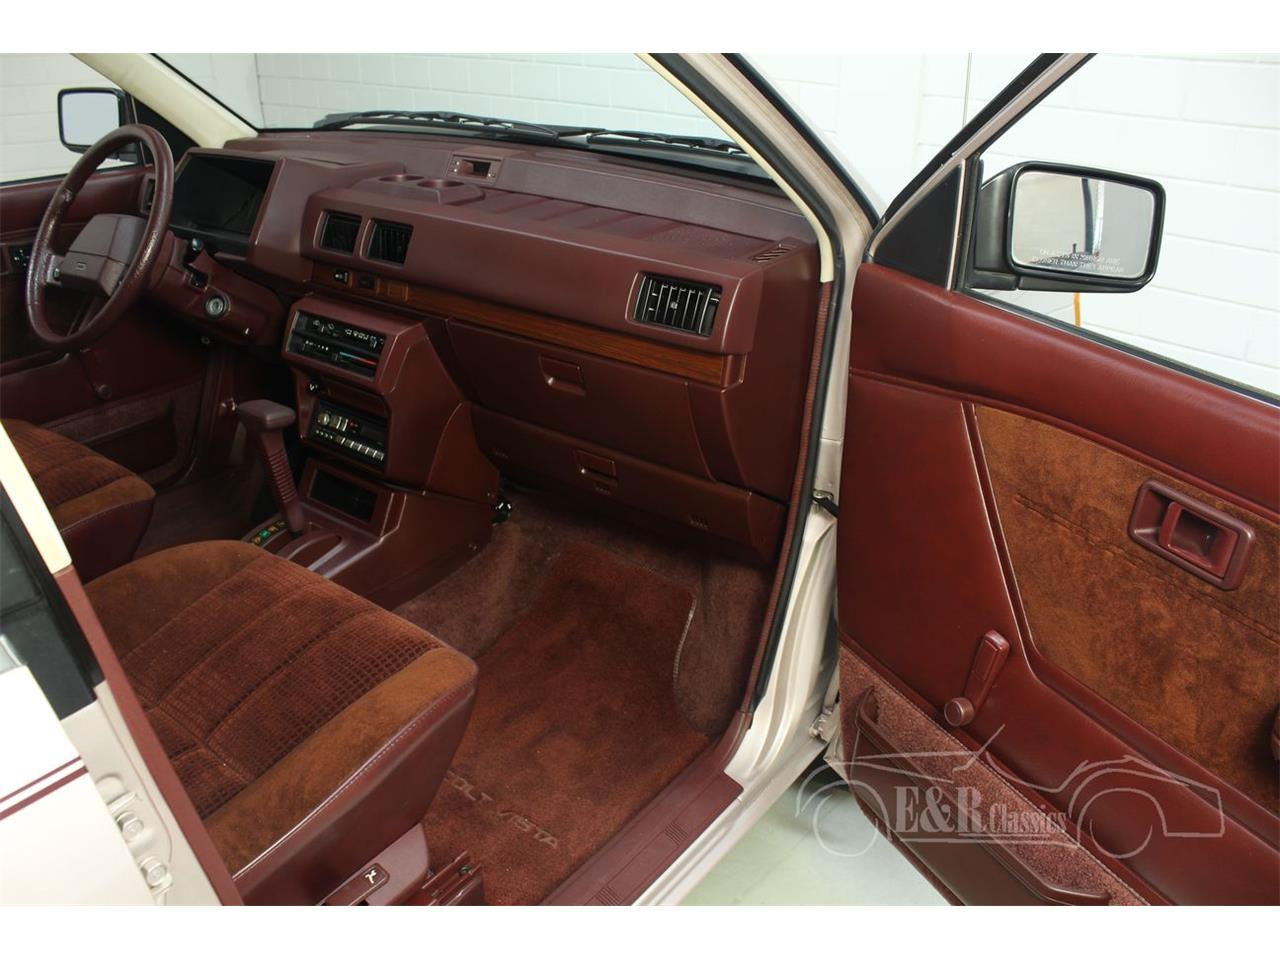 Large Picture of 1987 Dodge Colt located in [nl] Pays-Bas Offered by E & R Classics - PVV4